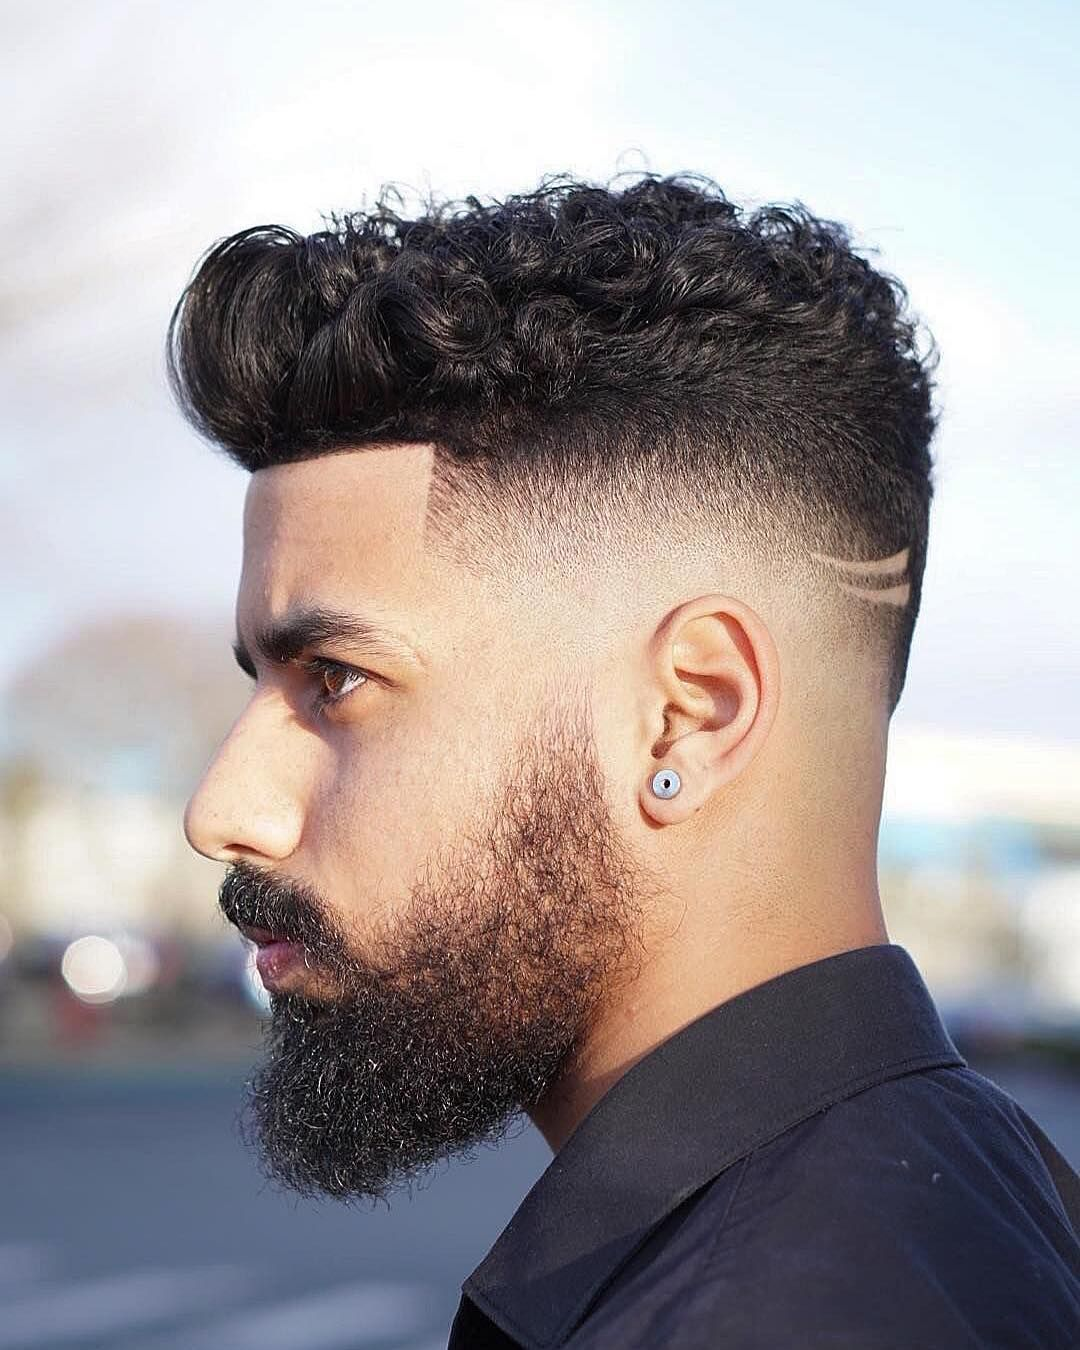 30 New Men's Hairstyles + Haircuts in 2020 New men